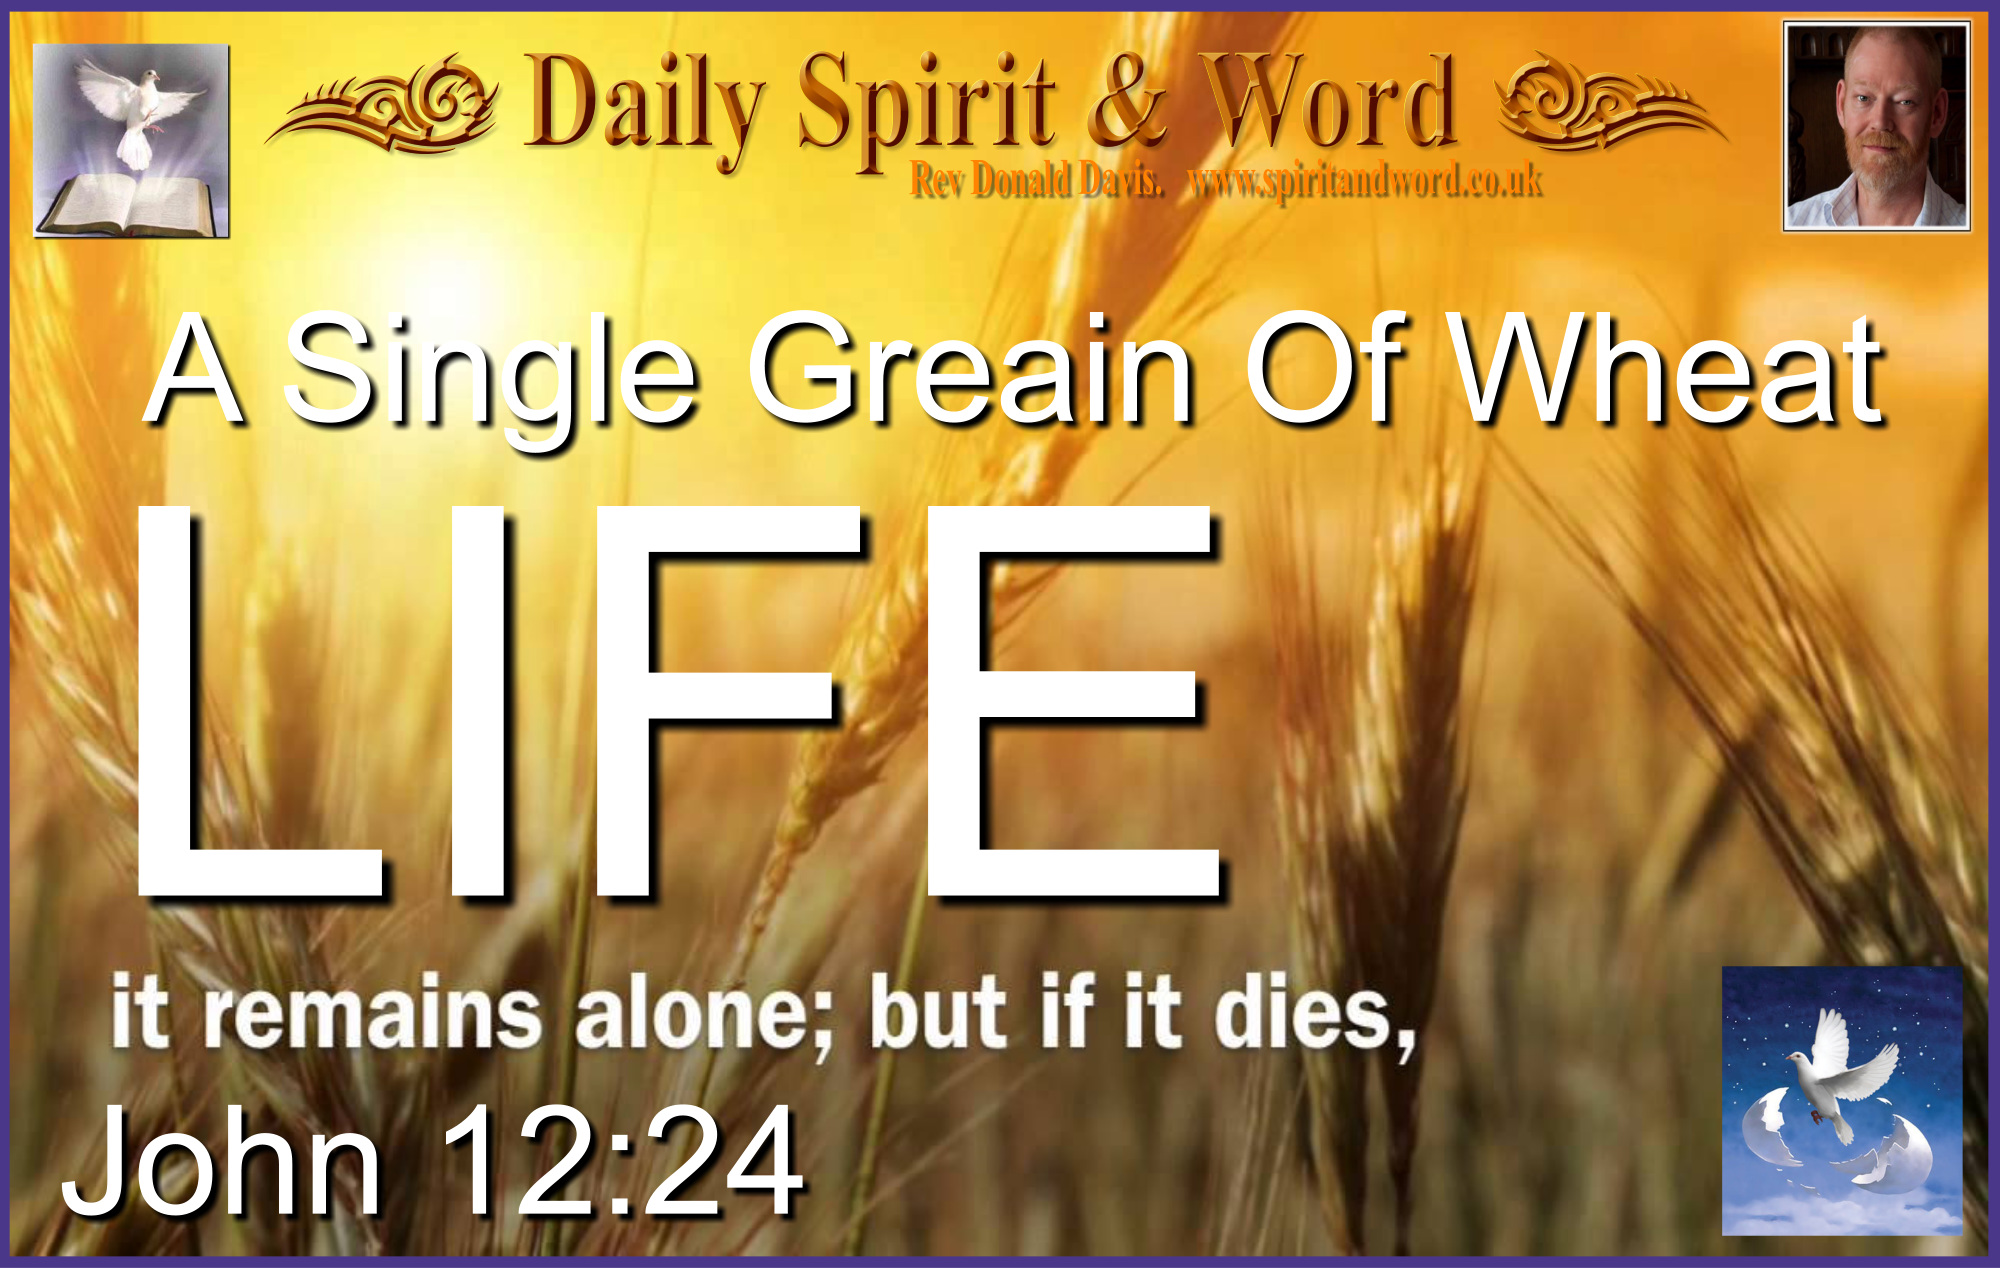 Life and Harvest from the death of the Wheat Grain